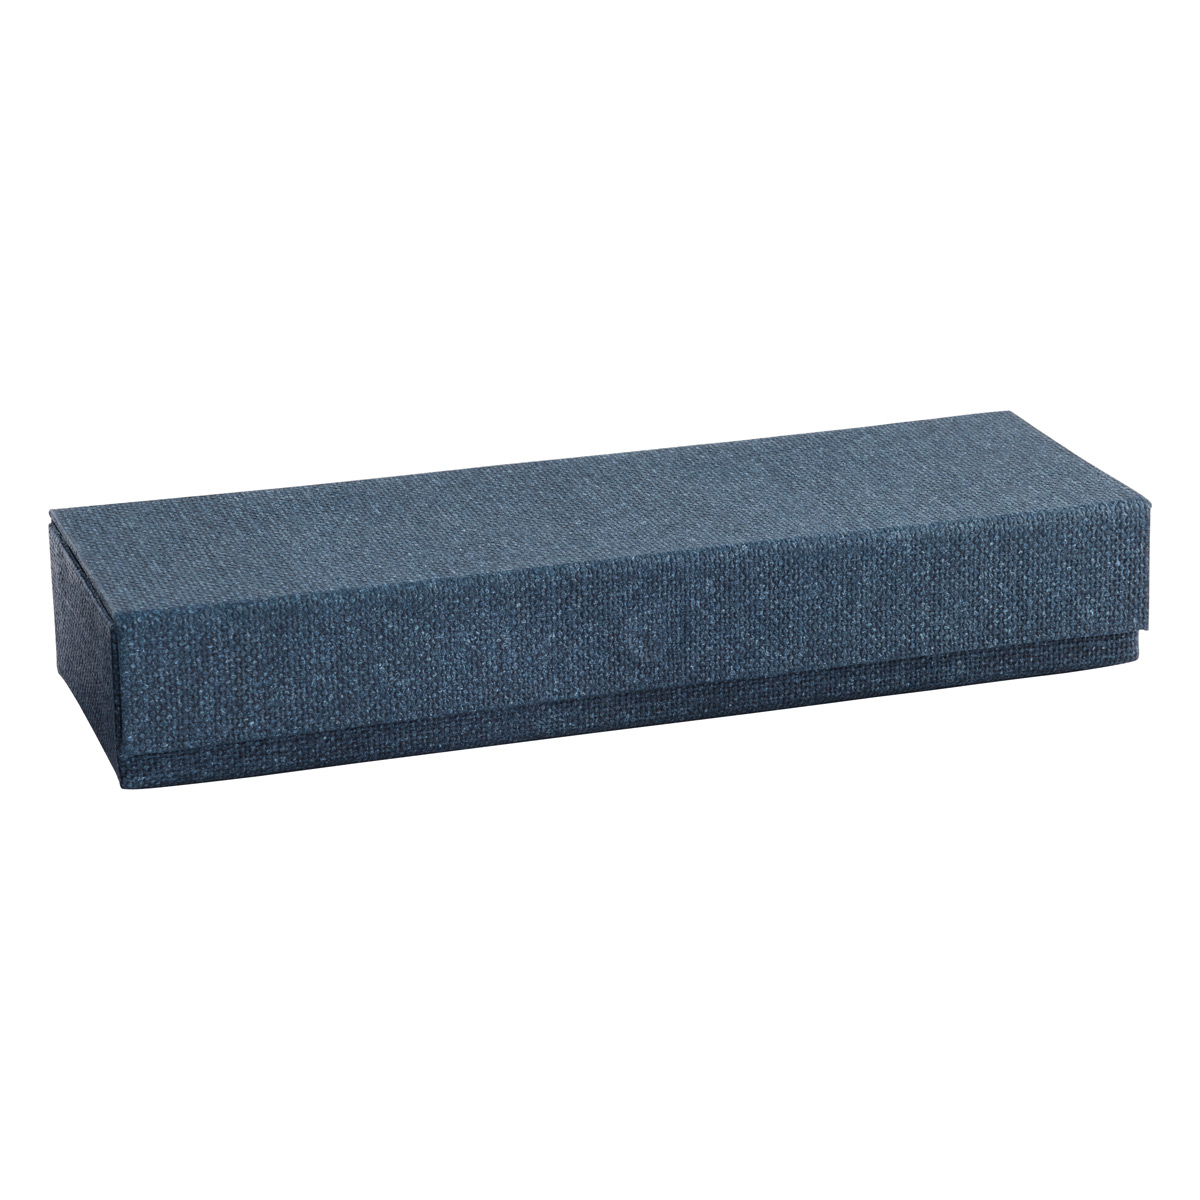 Marten Magnetic Pencil Box